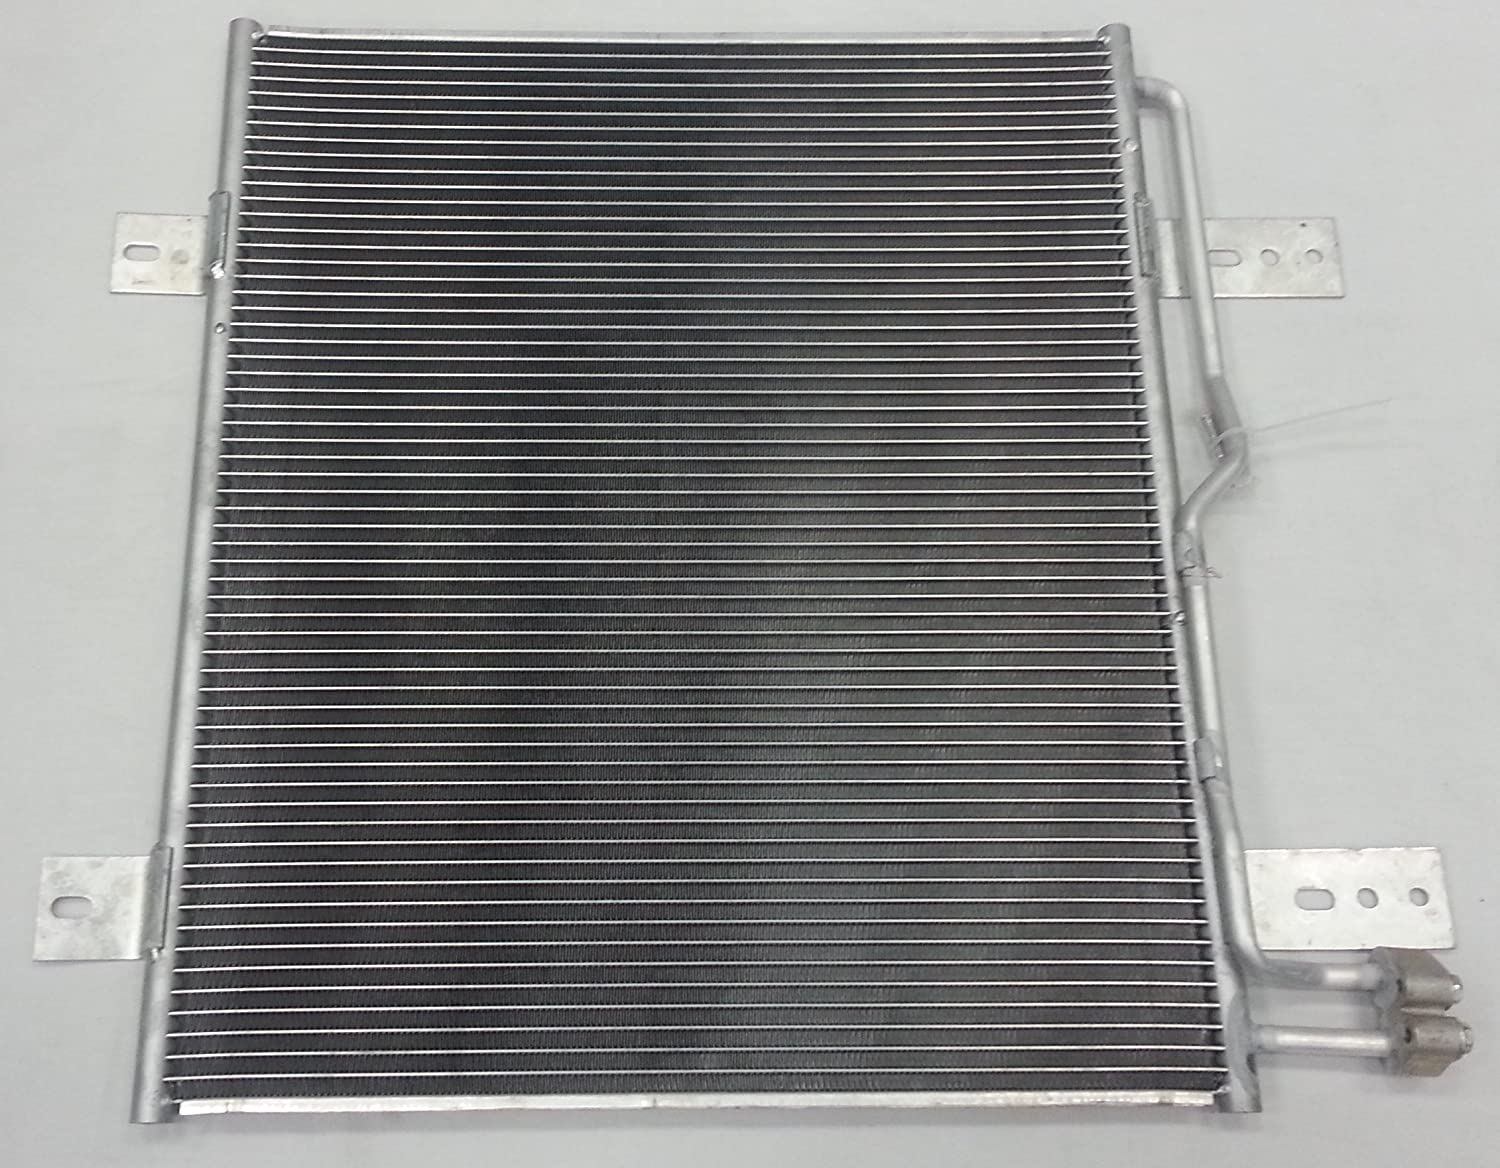 NEW Replacement Condenser for Ford - International - Navistar 4200 4300 4400 8500 F650 American Cooling Solutions